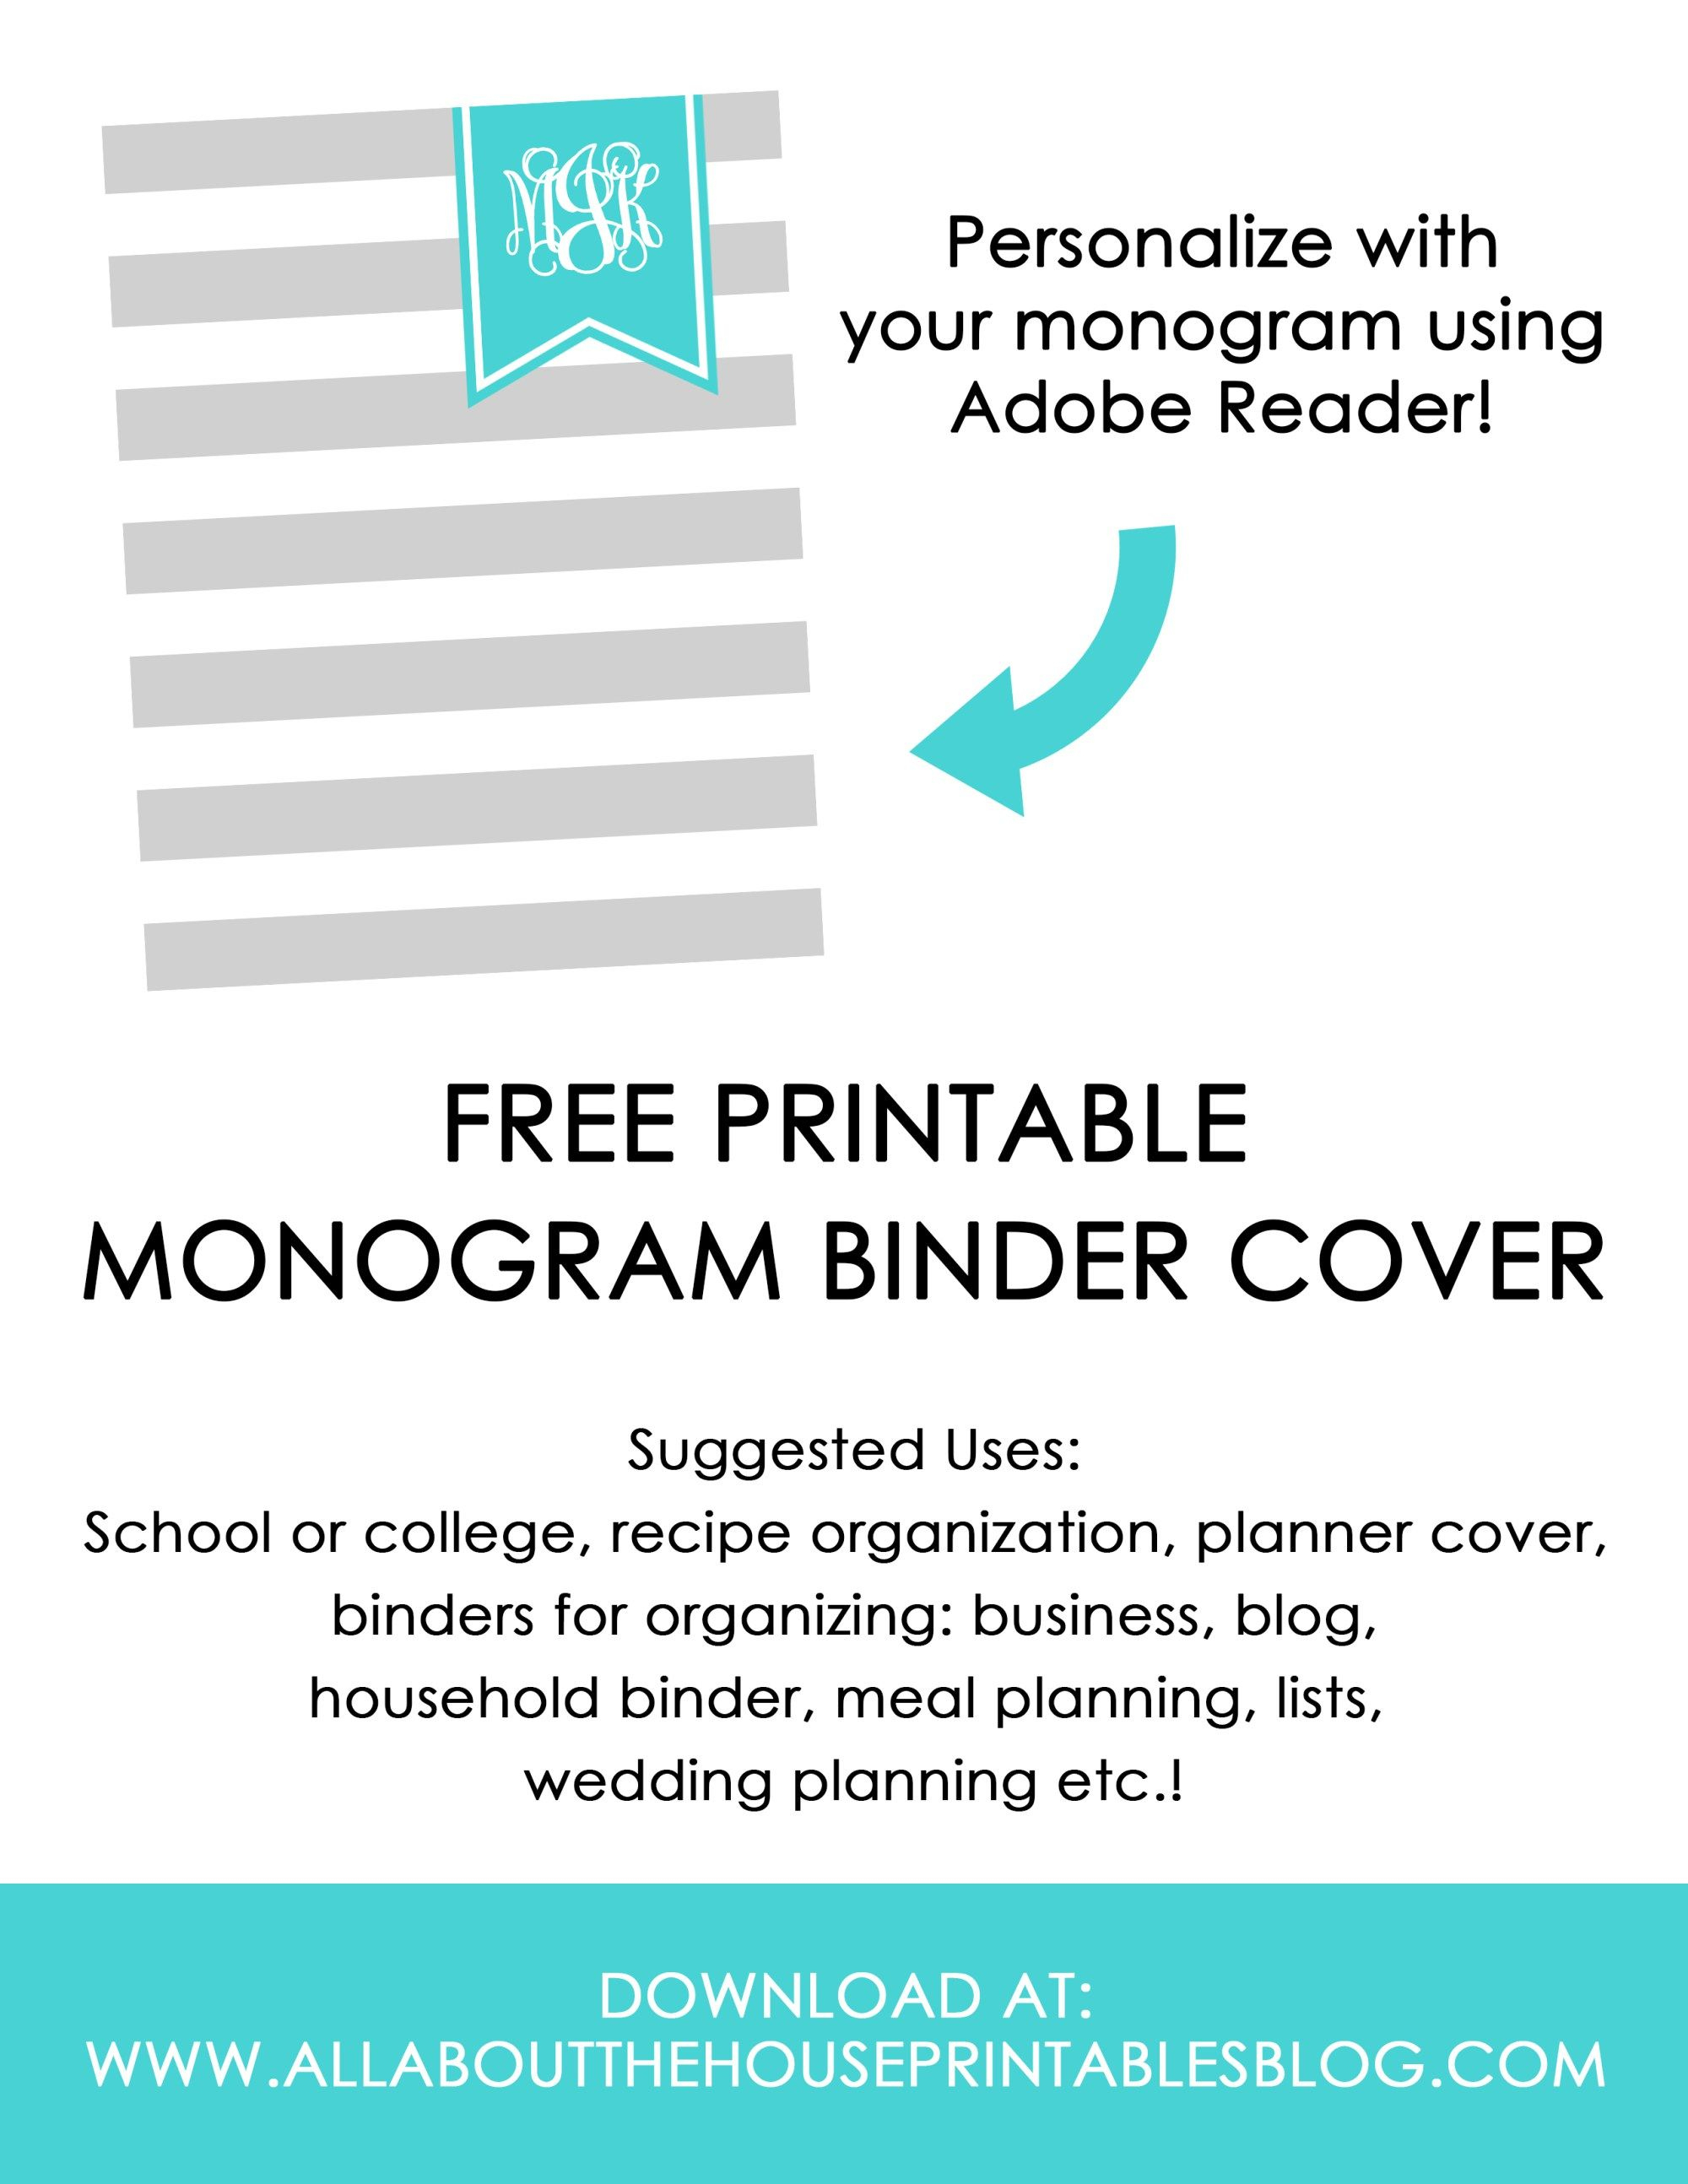 Ways To Organize Using Binder Covers (Plus A Free Printable Monogram - Free Printable Monogram Binder Covers